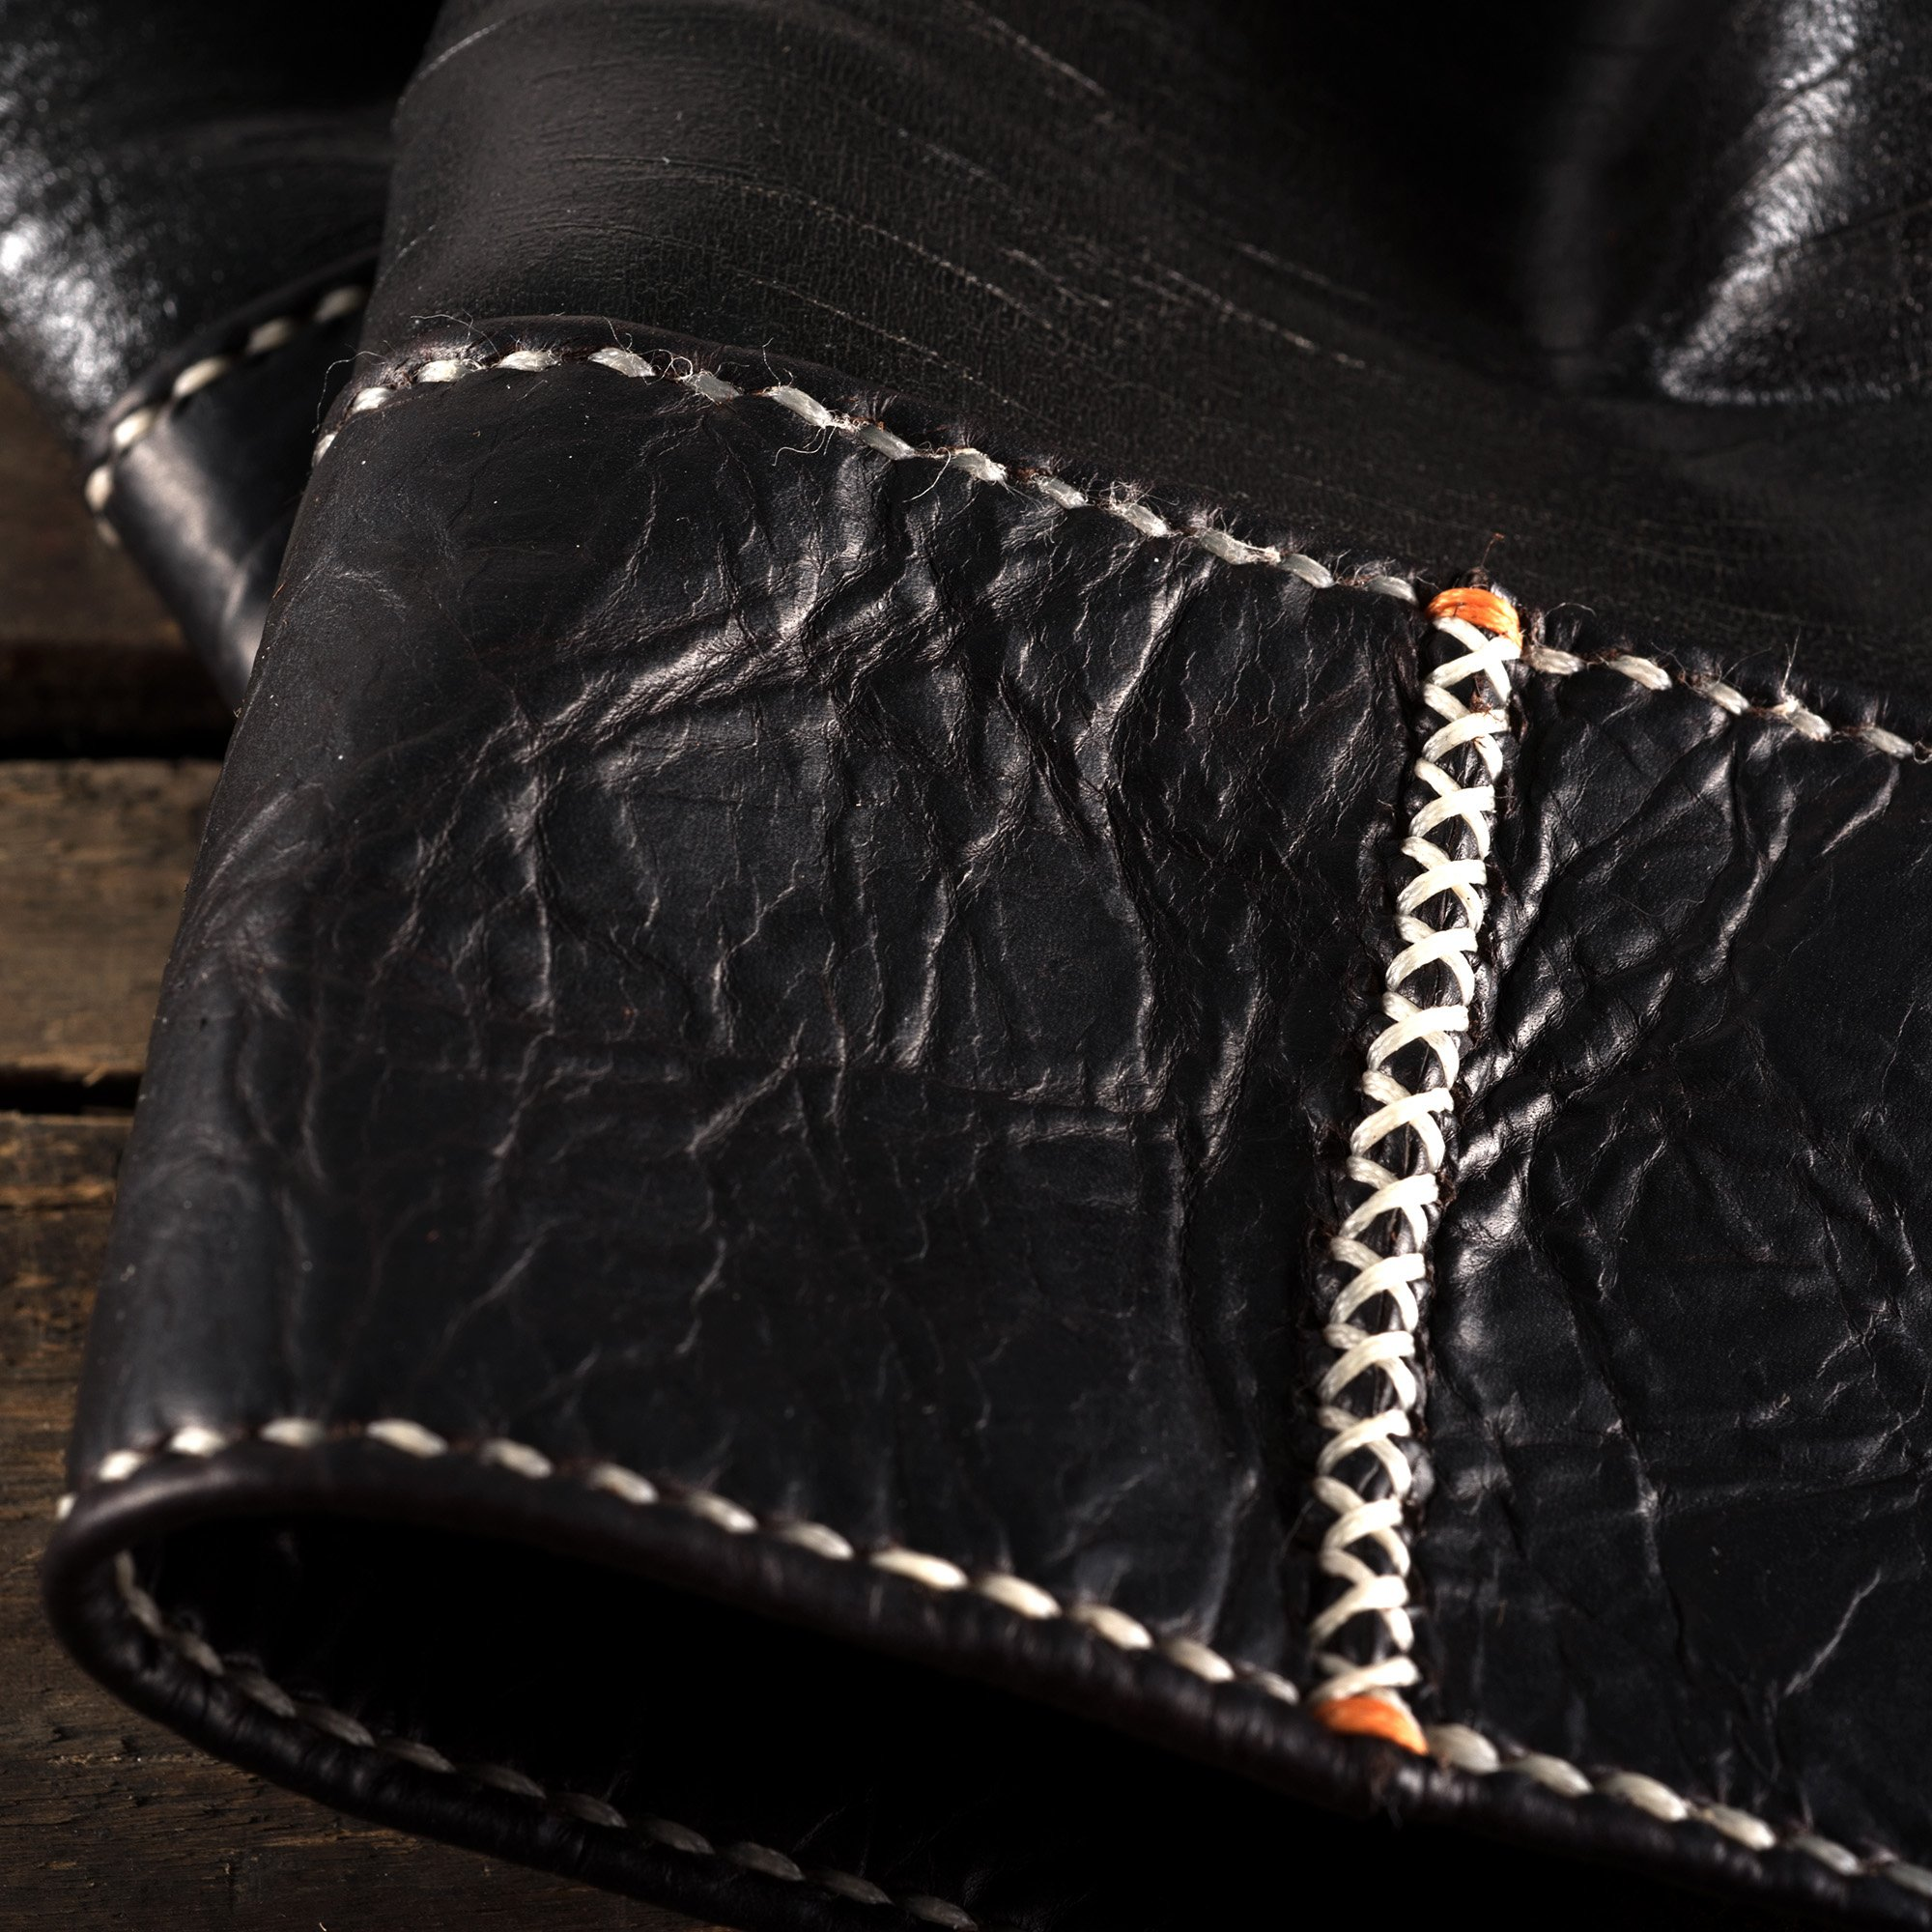 Billy Twang BOSS PIT GLOVE Leather grilling goves by BOSS PIT GLOVE (Image #4)